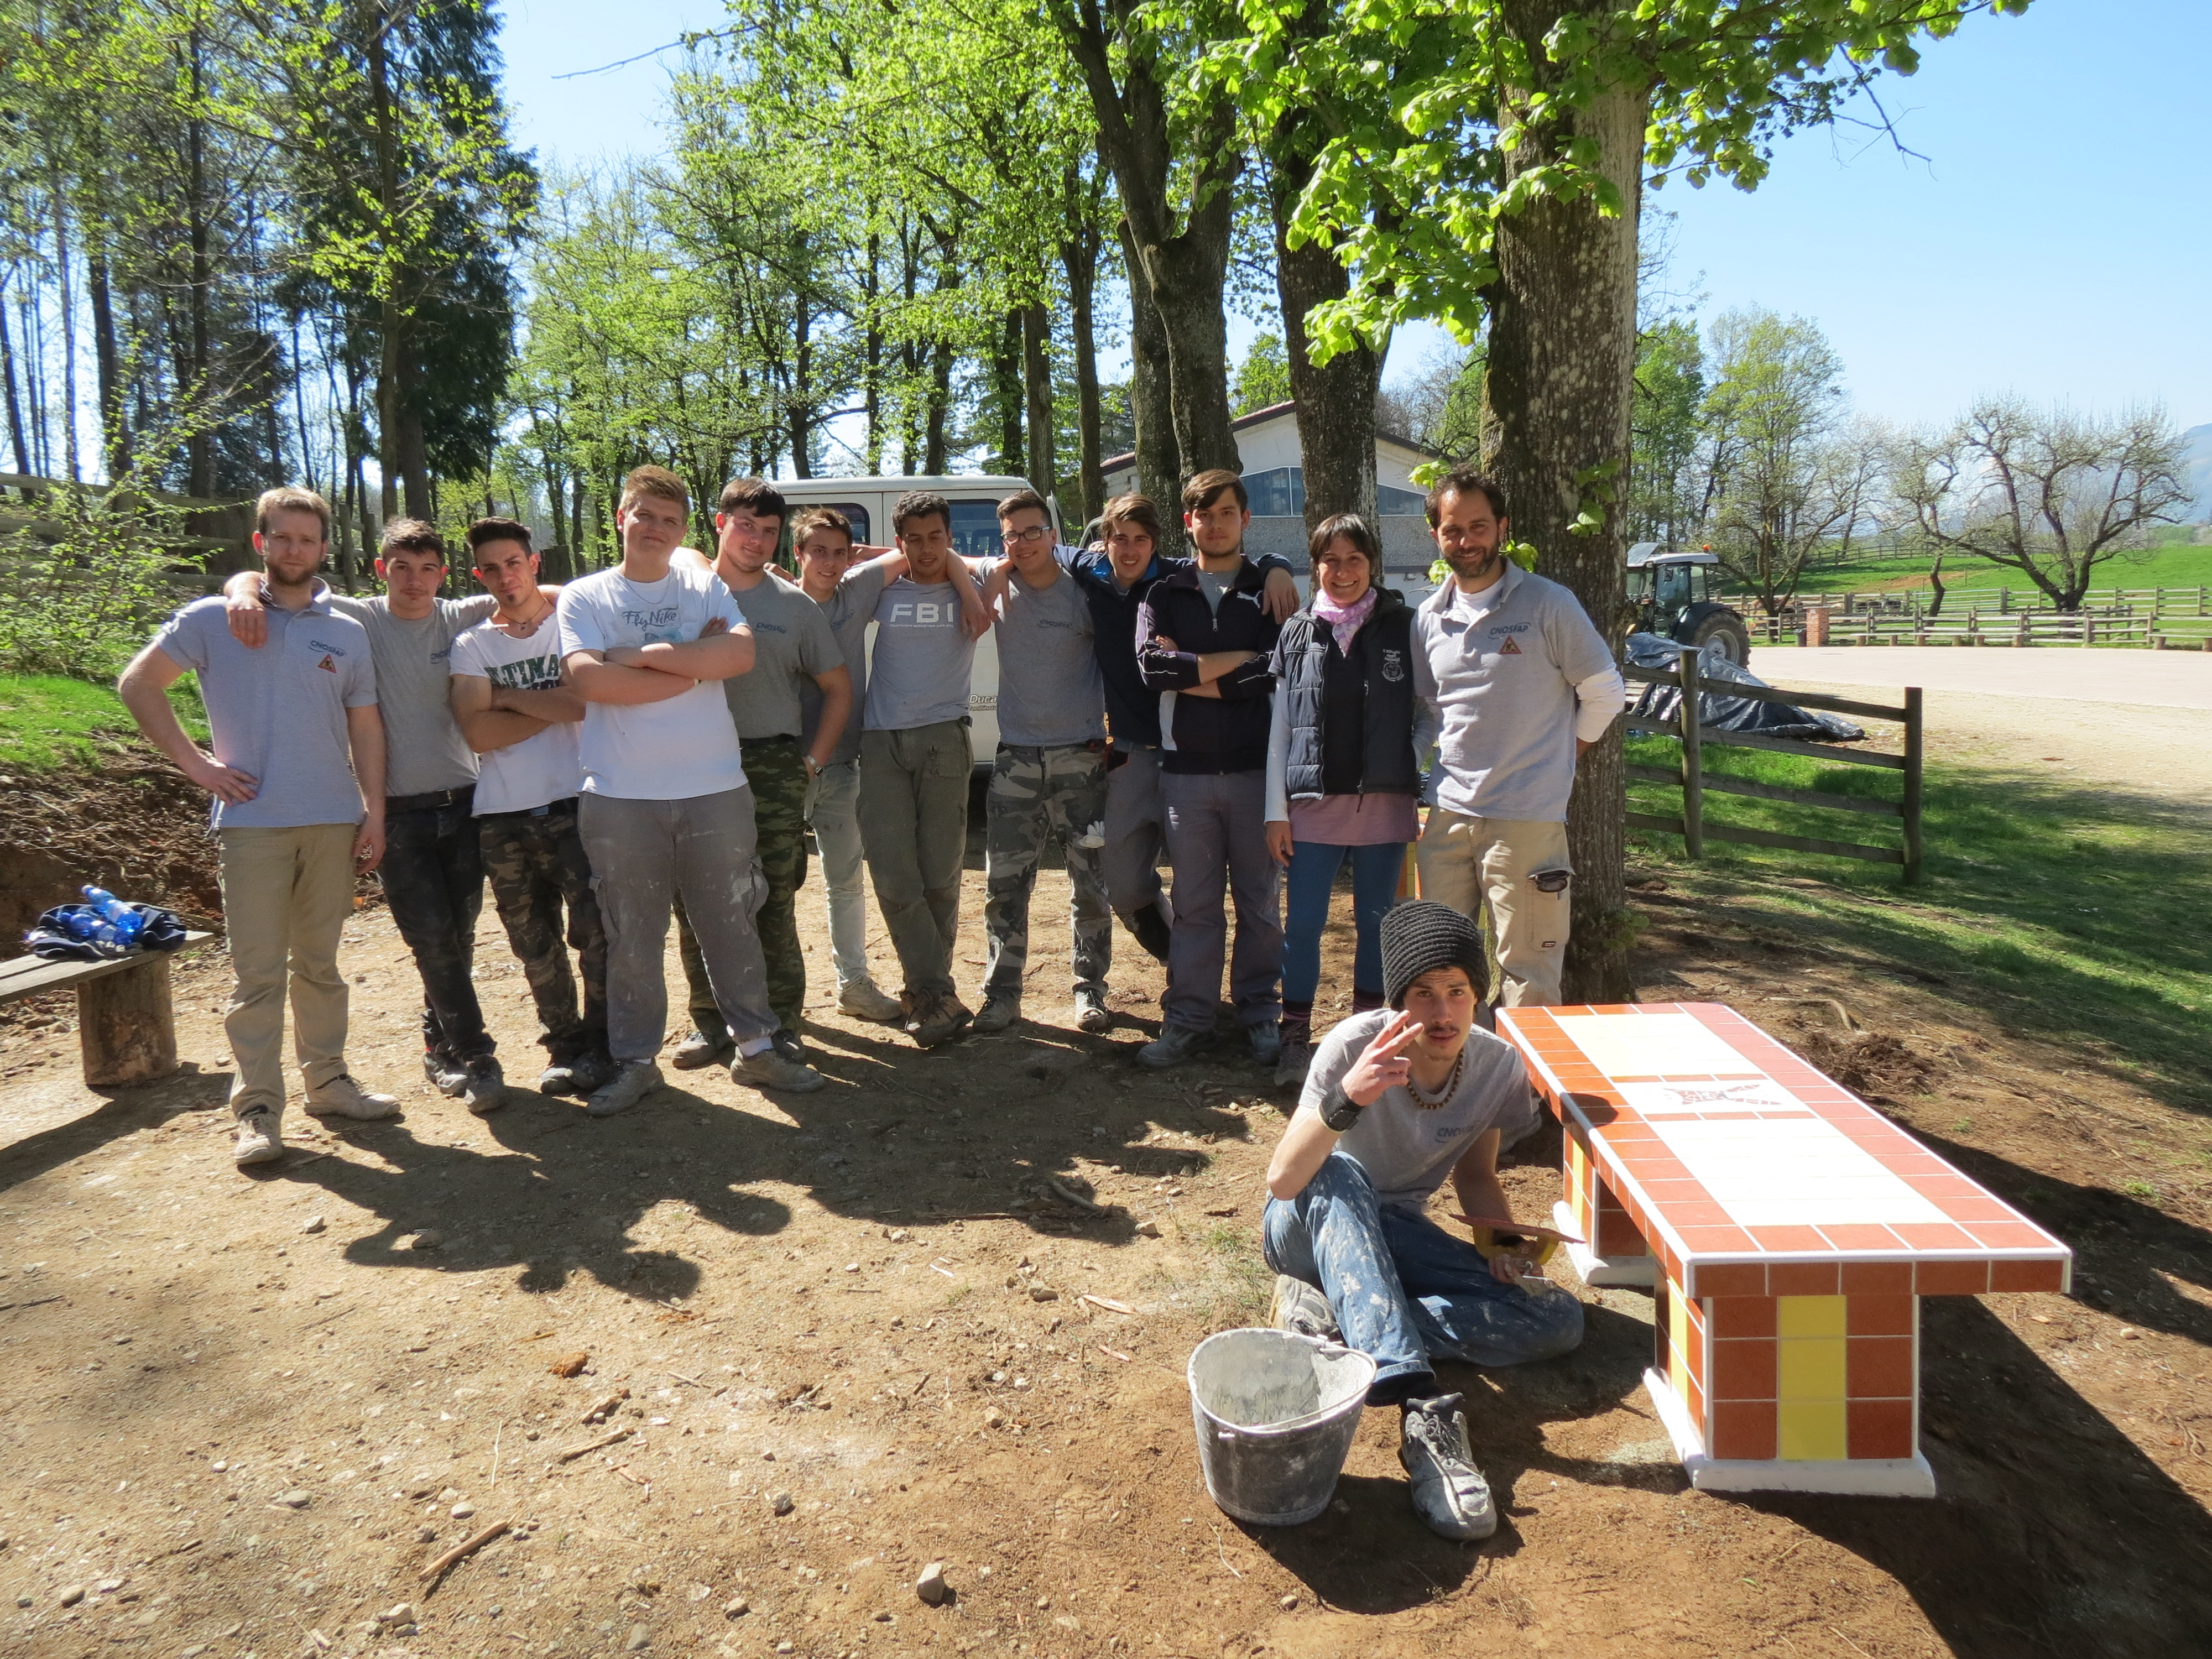 Students from CNOS-FAP professional school have built two ceramic benches for Il Rifugio